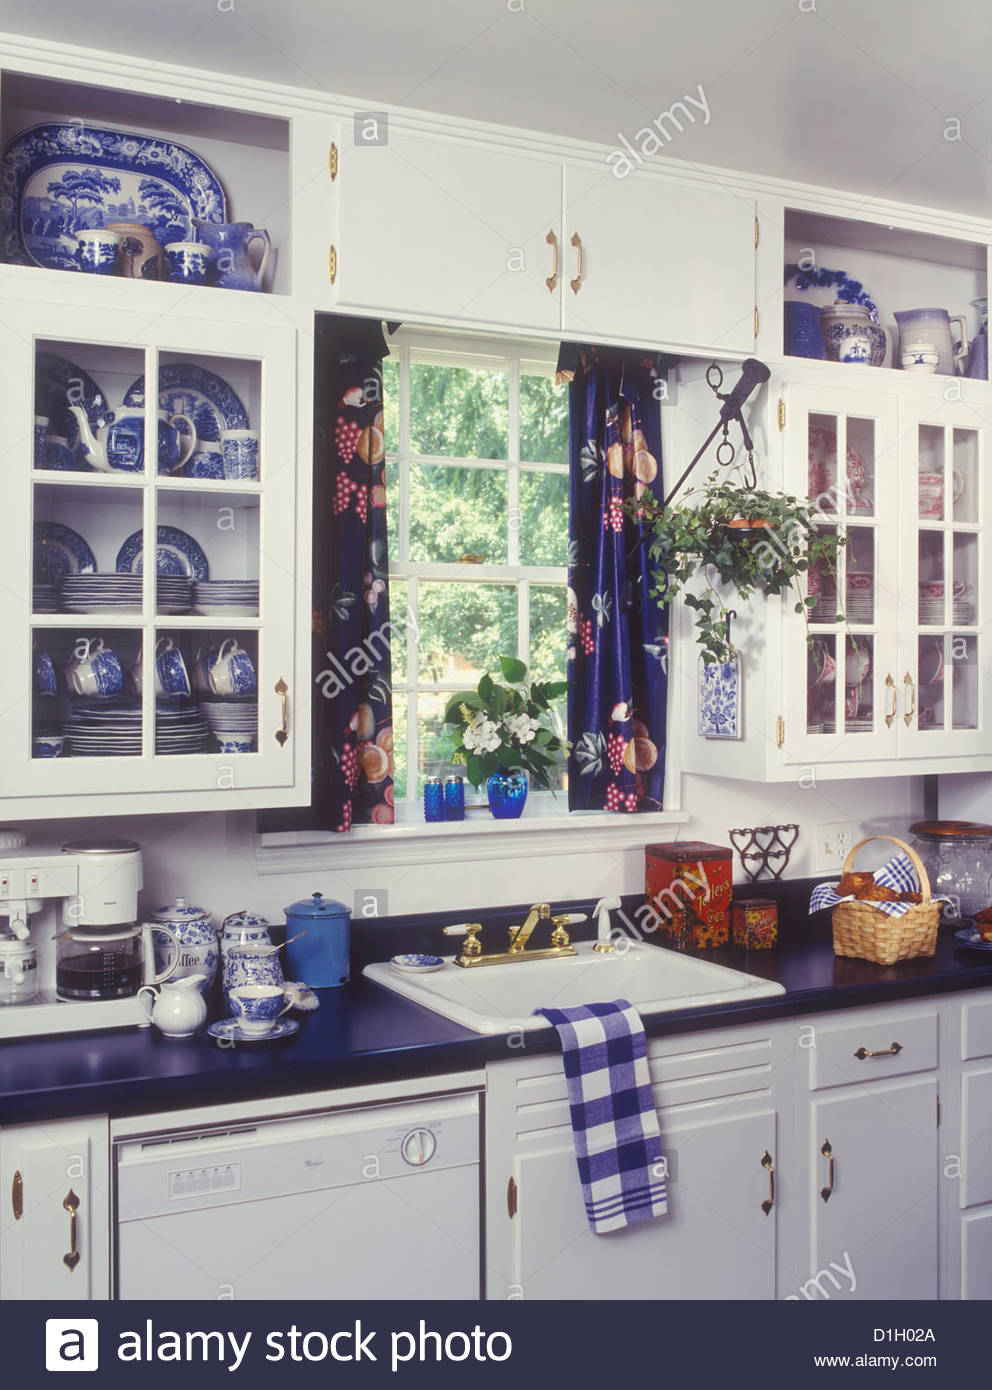 Blue Willow Kitchen